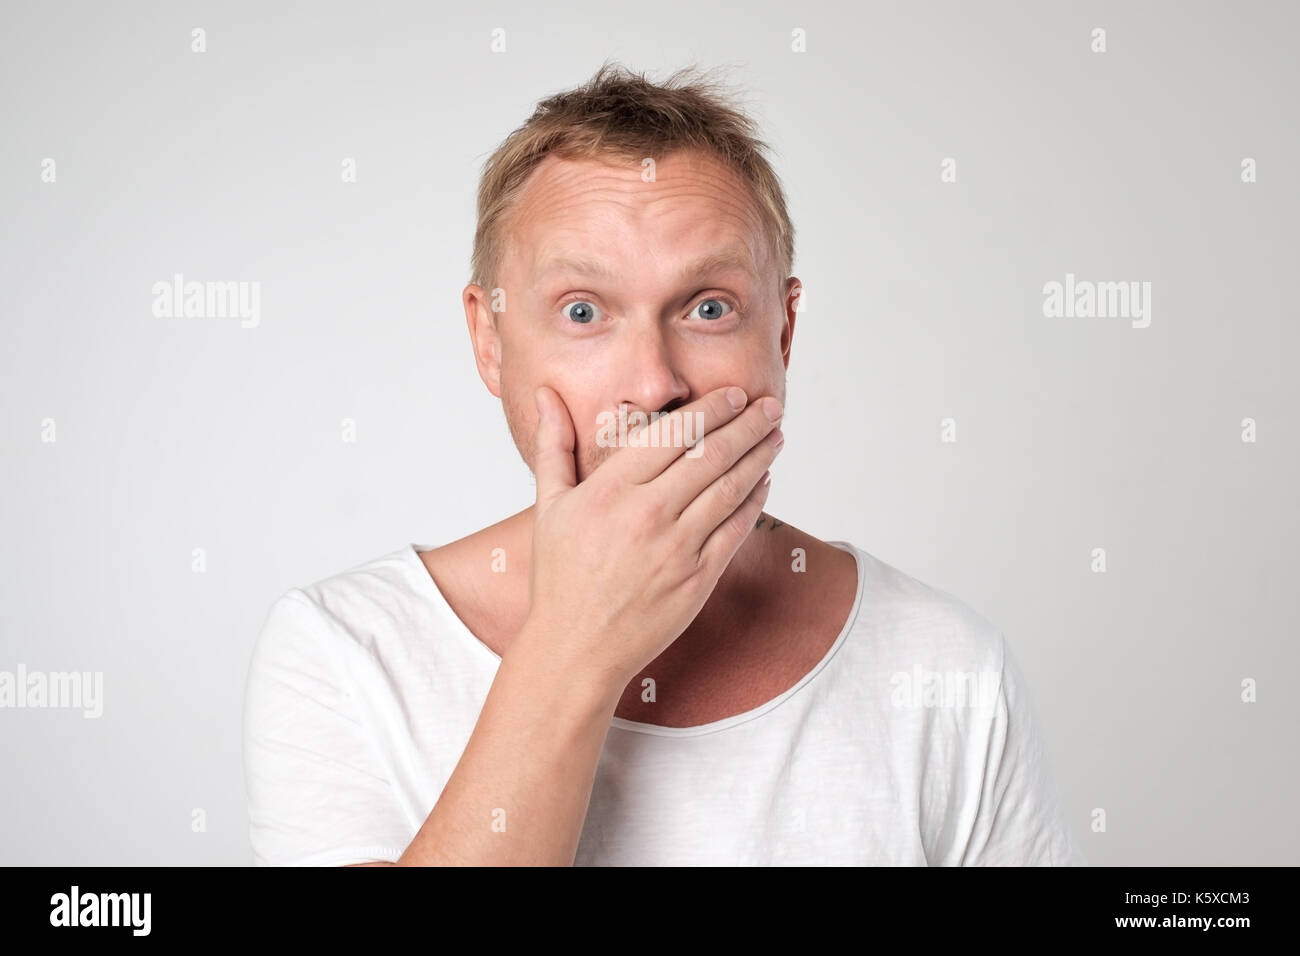 young caucasian man shows sign hand gesture holding finger on lips. - Stock Image